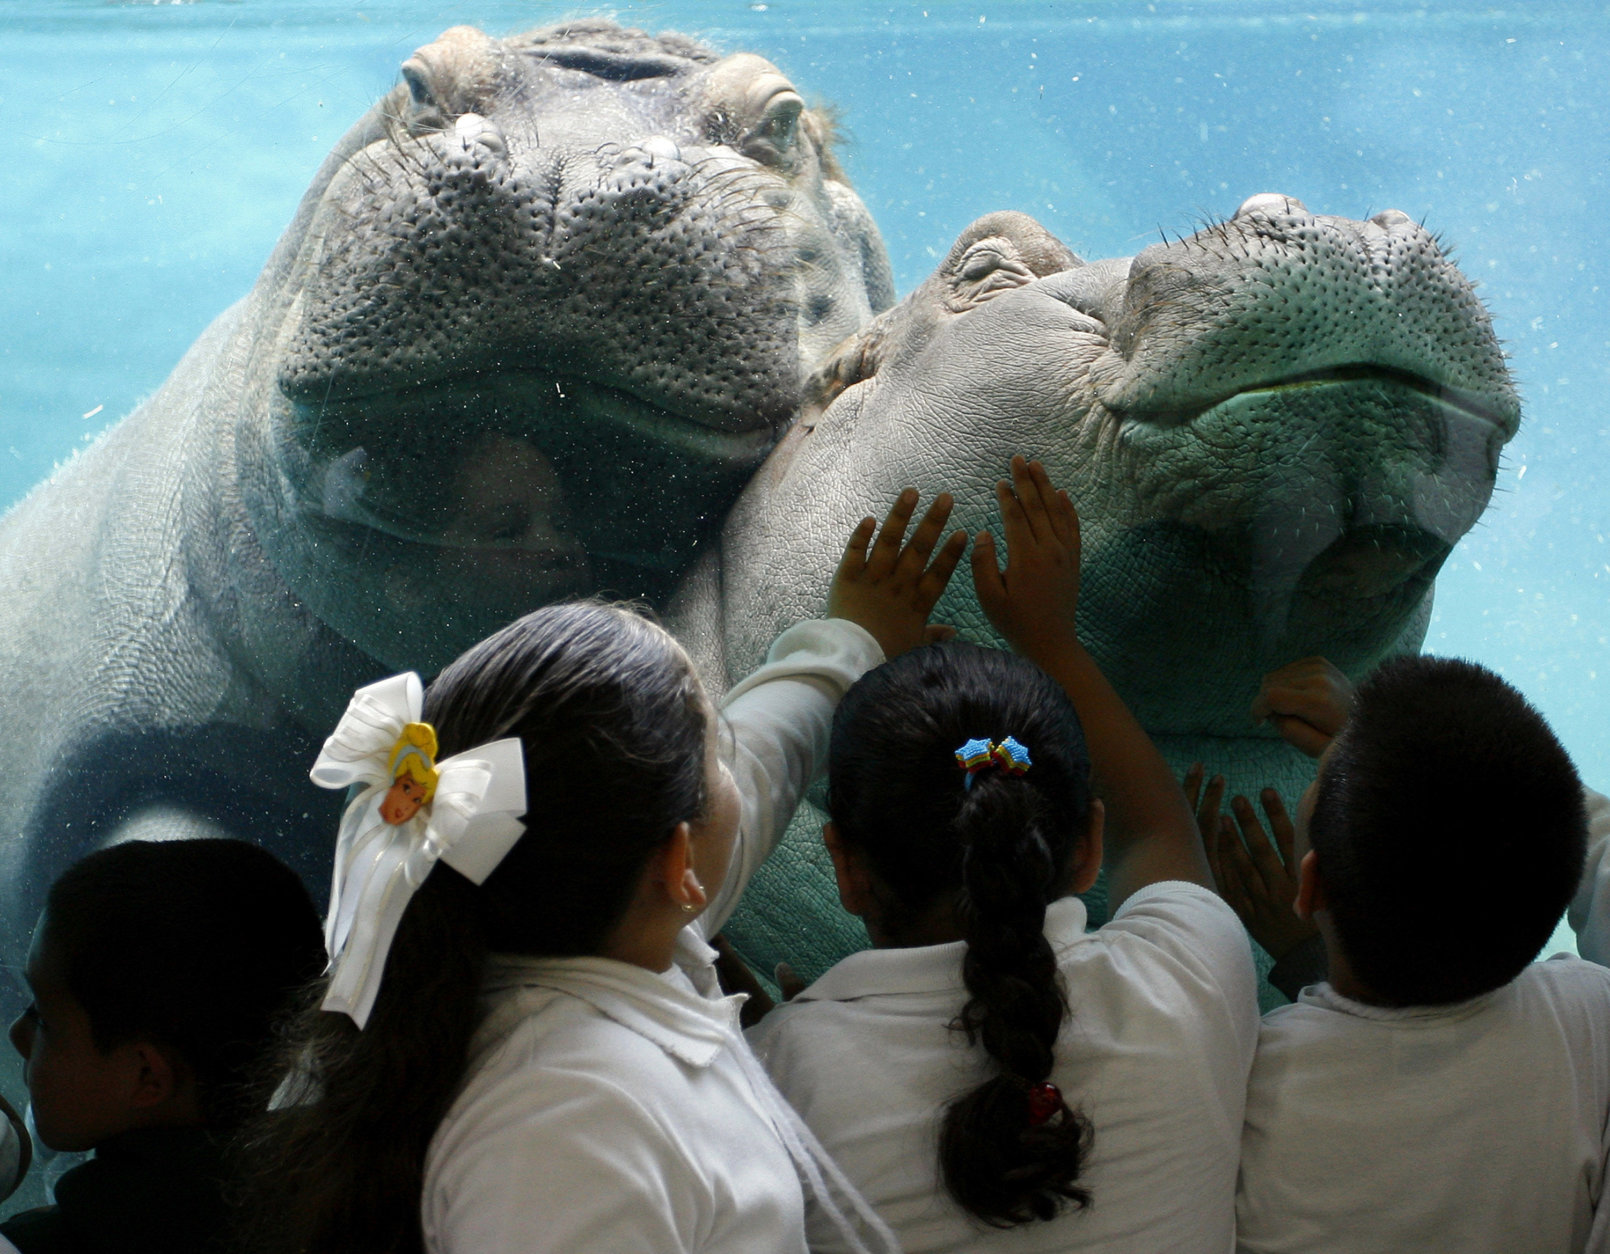 School children reach out an touch the glass as African River Hippos Funani, left, and Jazi, right, swim at the Ituri Forest exhibit in the San Diego Zoo Tuesday, May 9, 2006, in San Diego. (AP Photo/Denis Poroy)